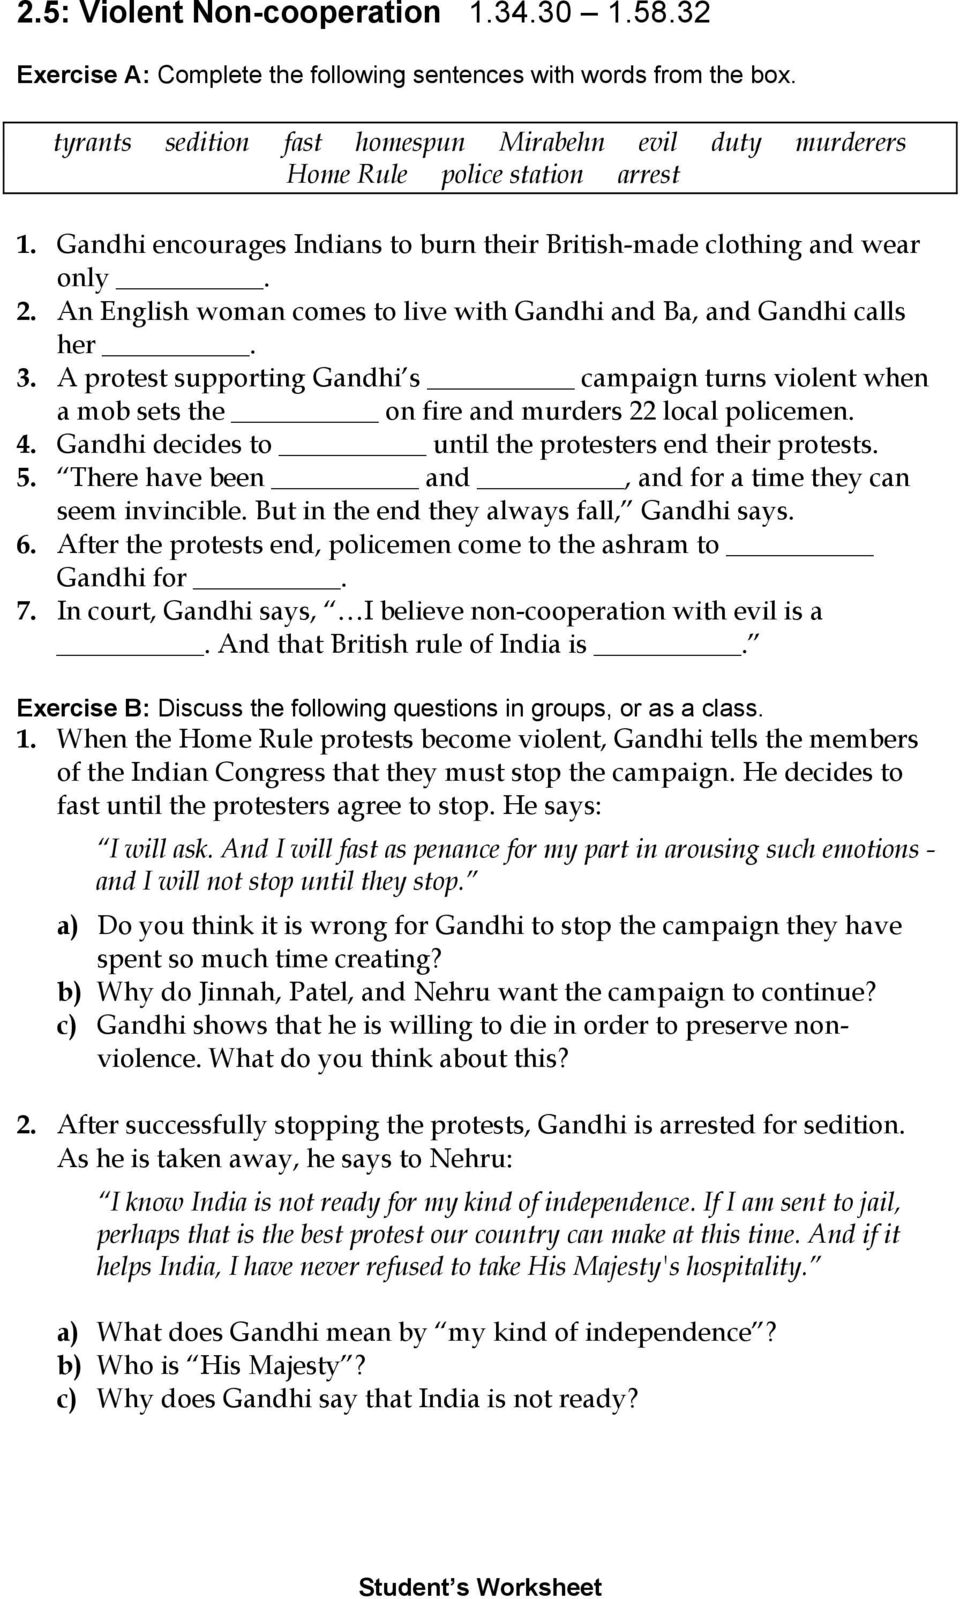 An English woman comes to live with Gandhi and Ba, and Gandhi calls her. 3. A protest supporting Gandhi s campaign turns violent when a mob sets the on fire and murders 22 local policemen. 4.